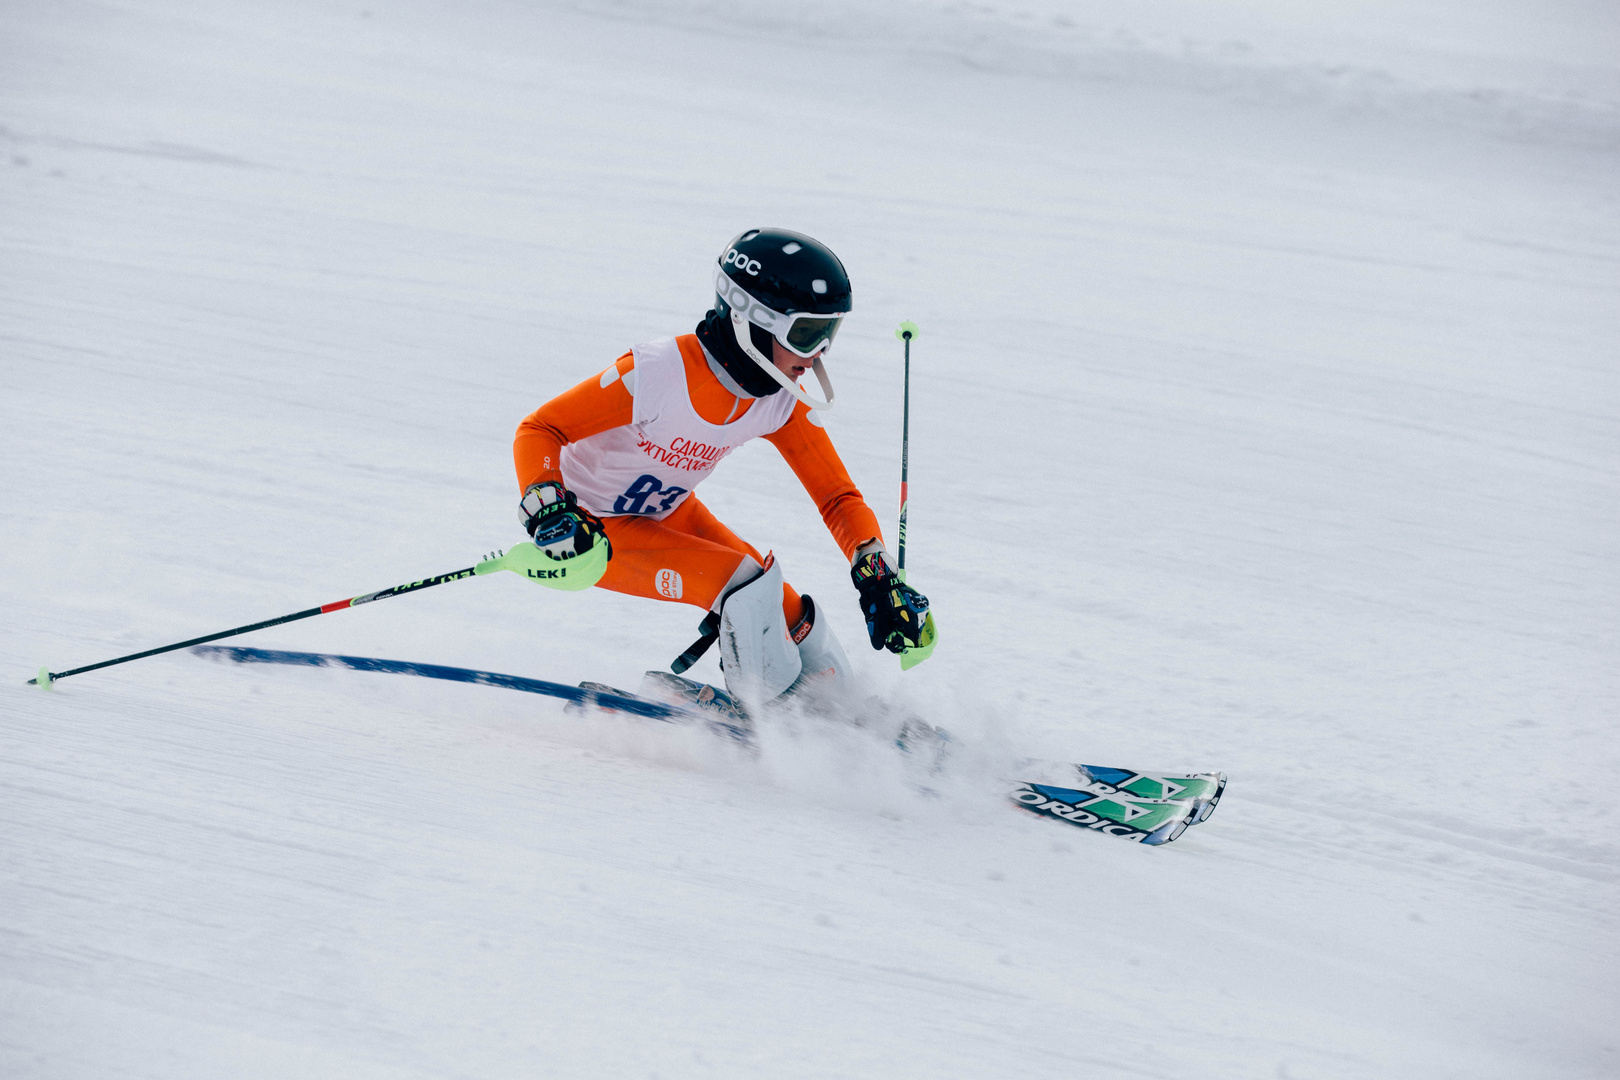 young skier, slalom